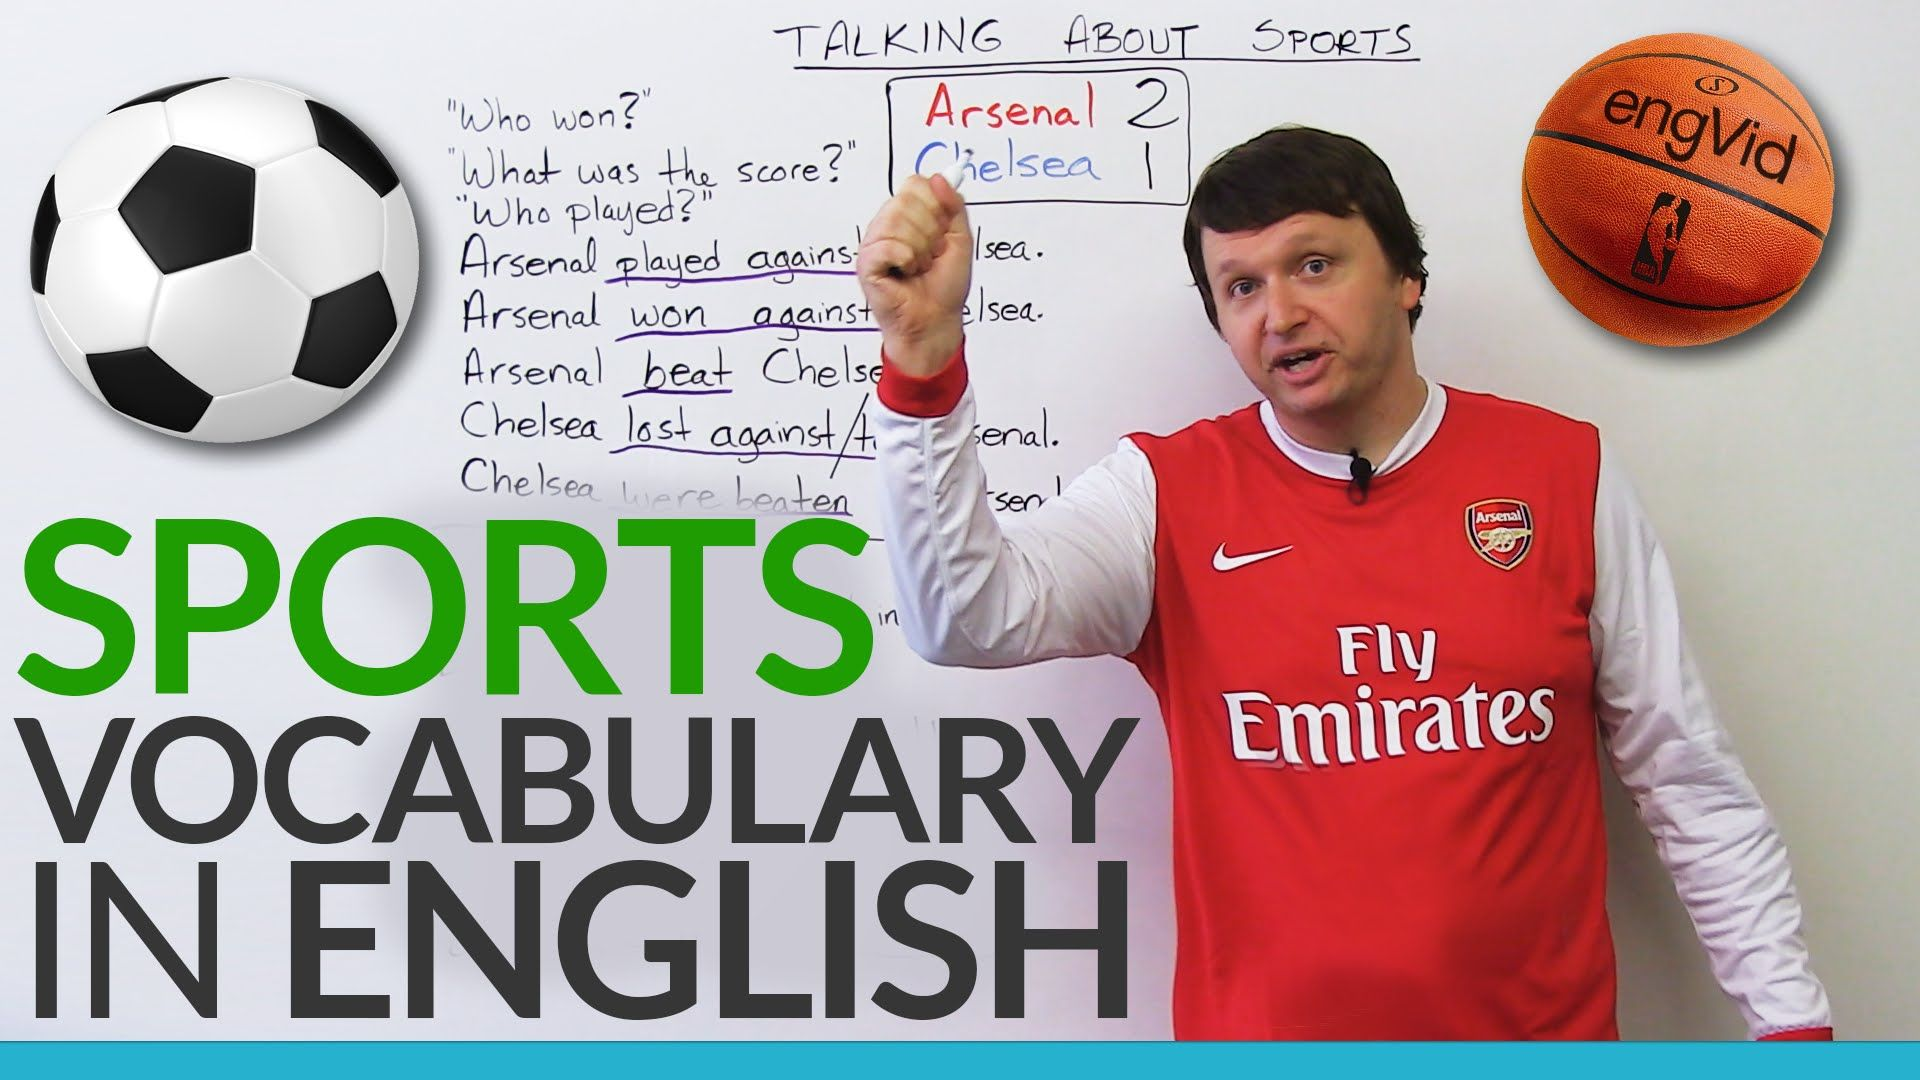 In This Video You Will Learn Important Vocabulary Related